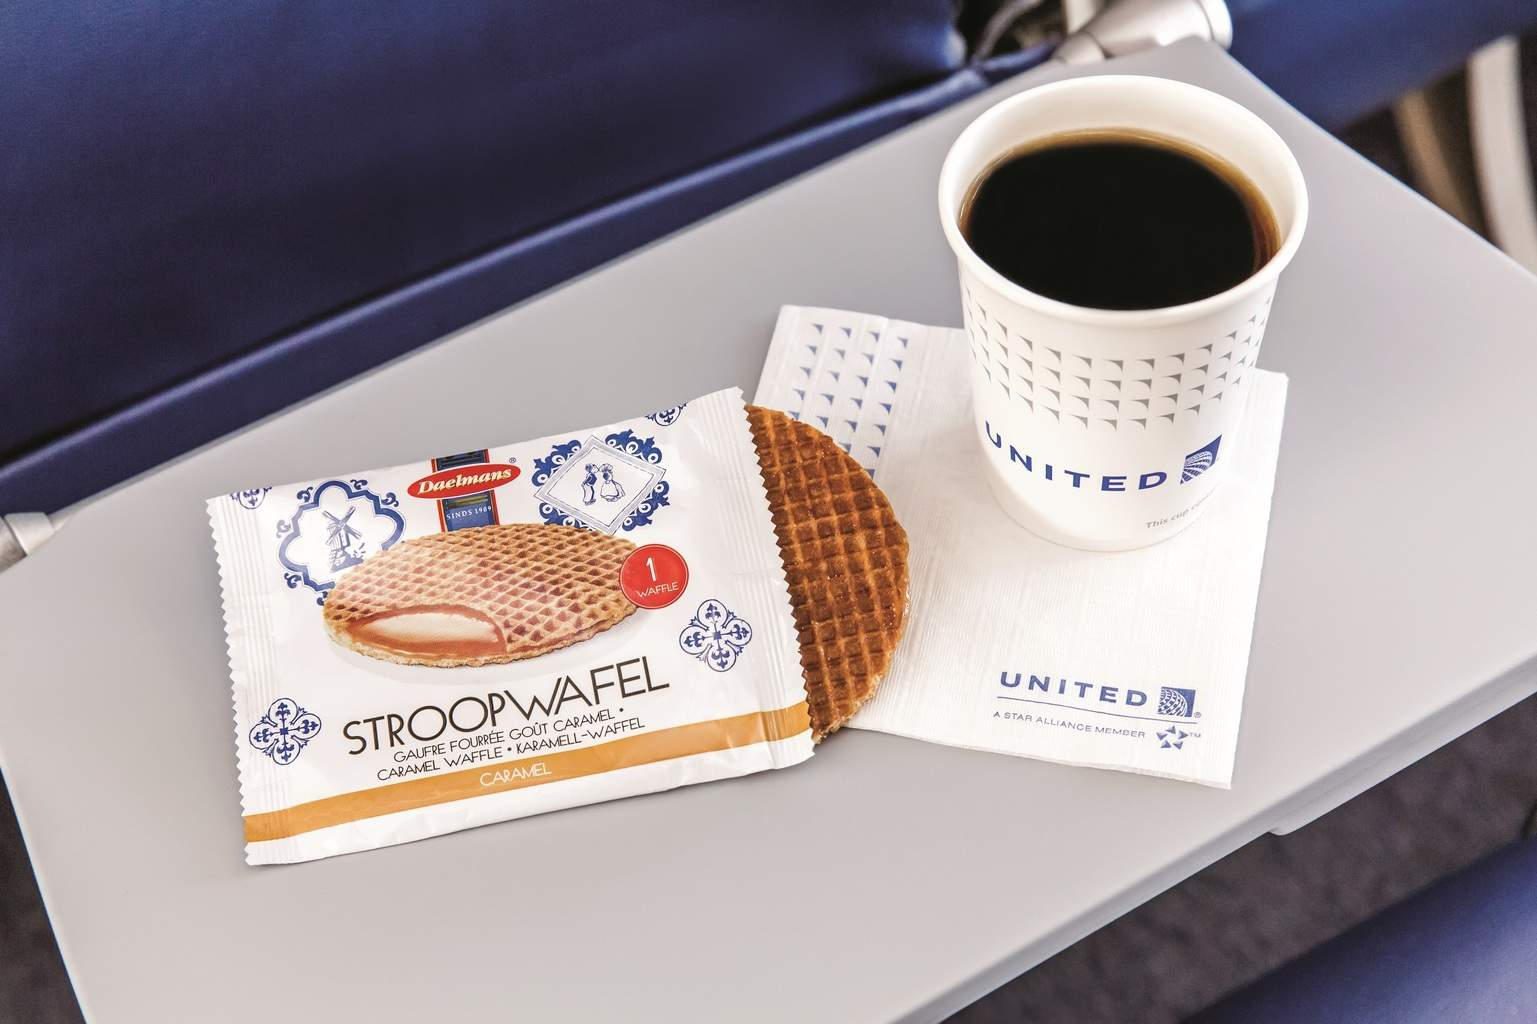 United Airlines brings back free snacks to Economy